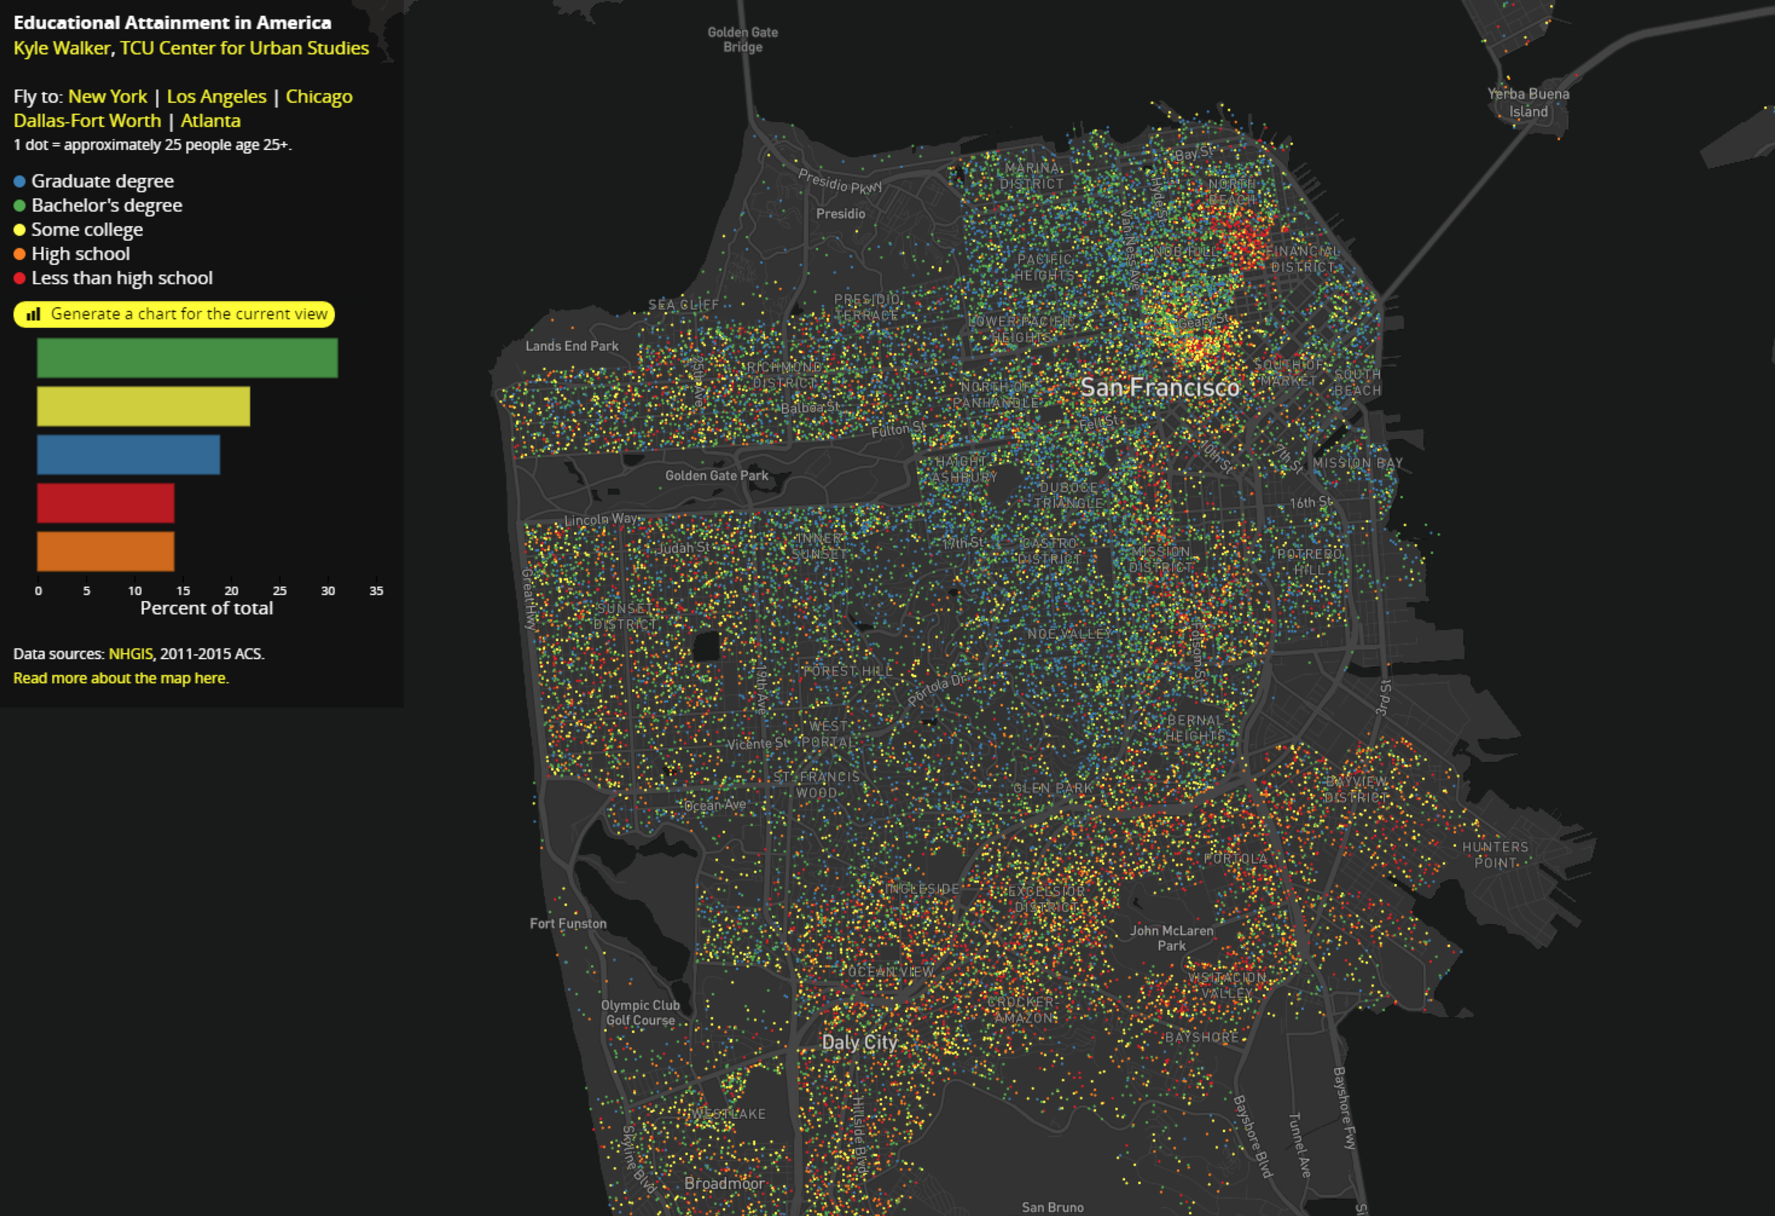 Mapping educational attainment